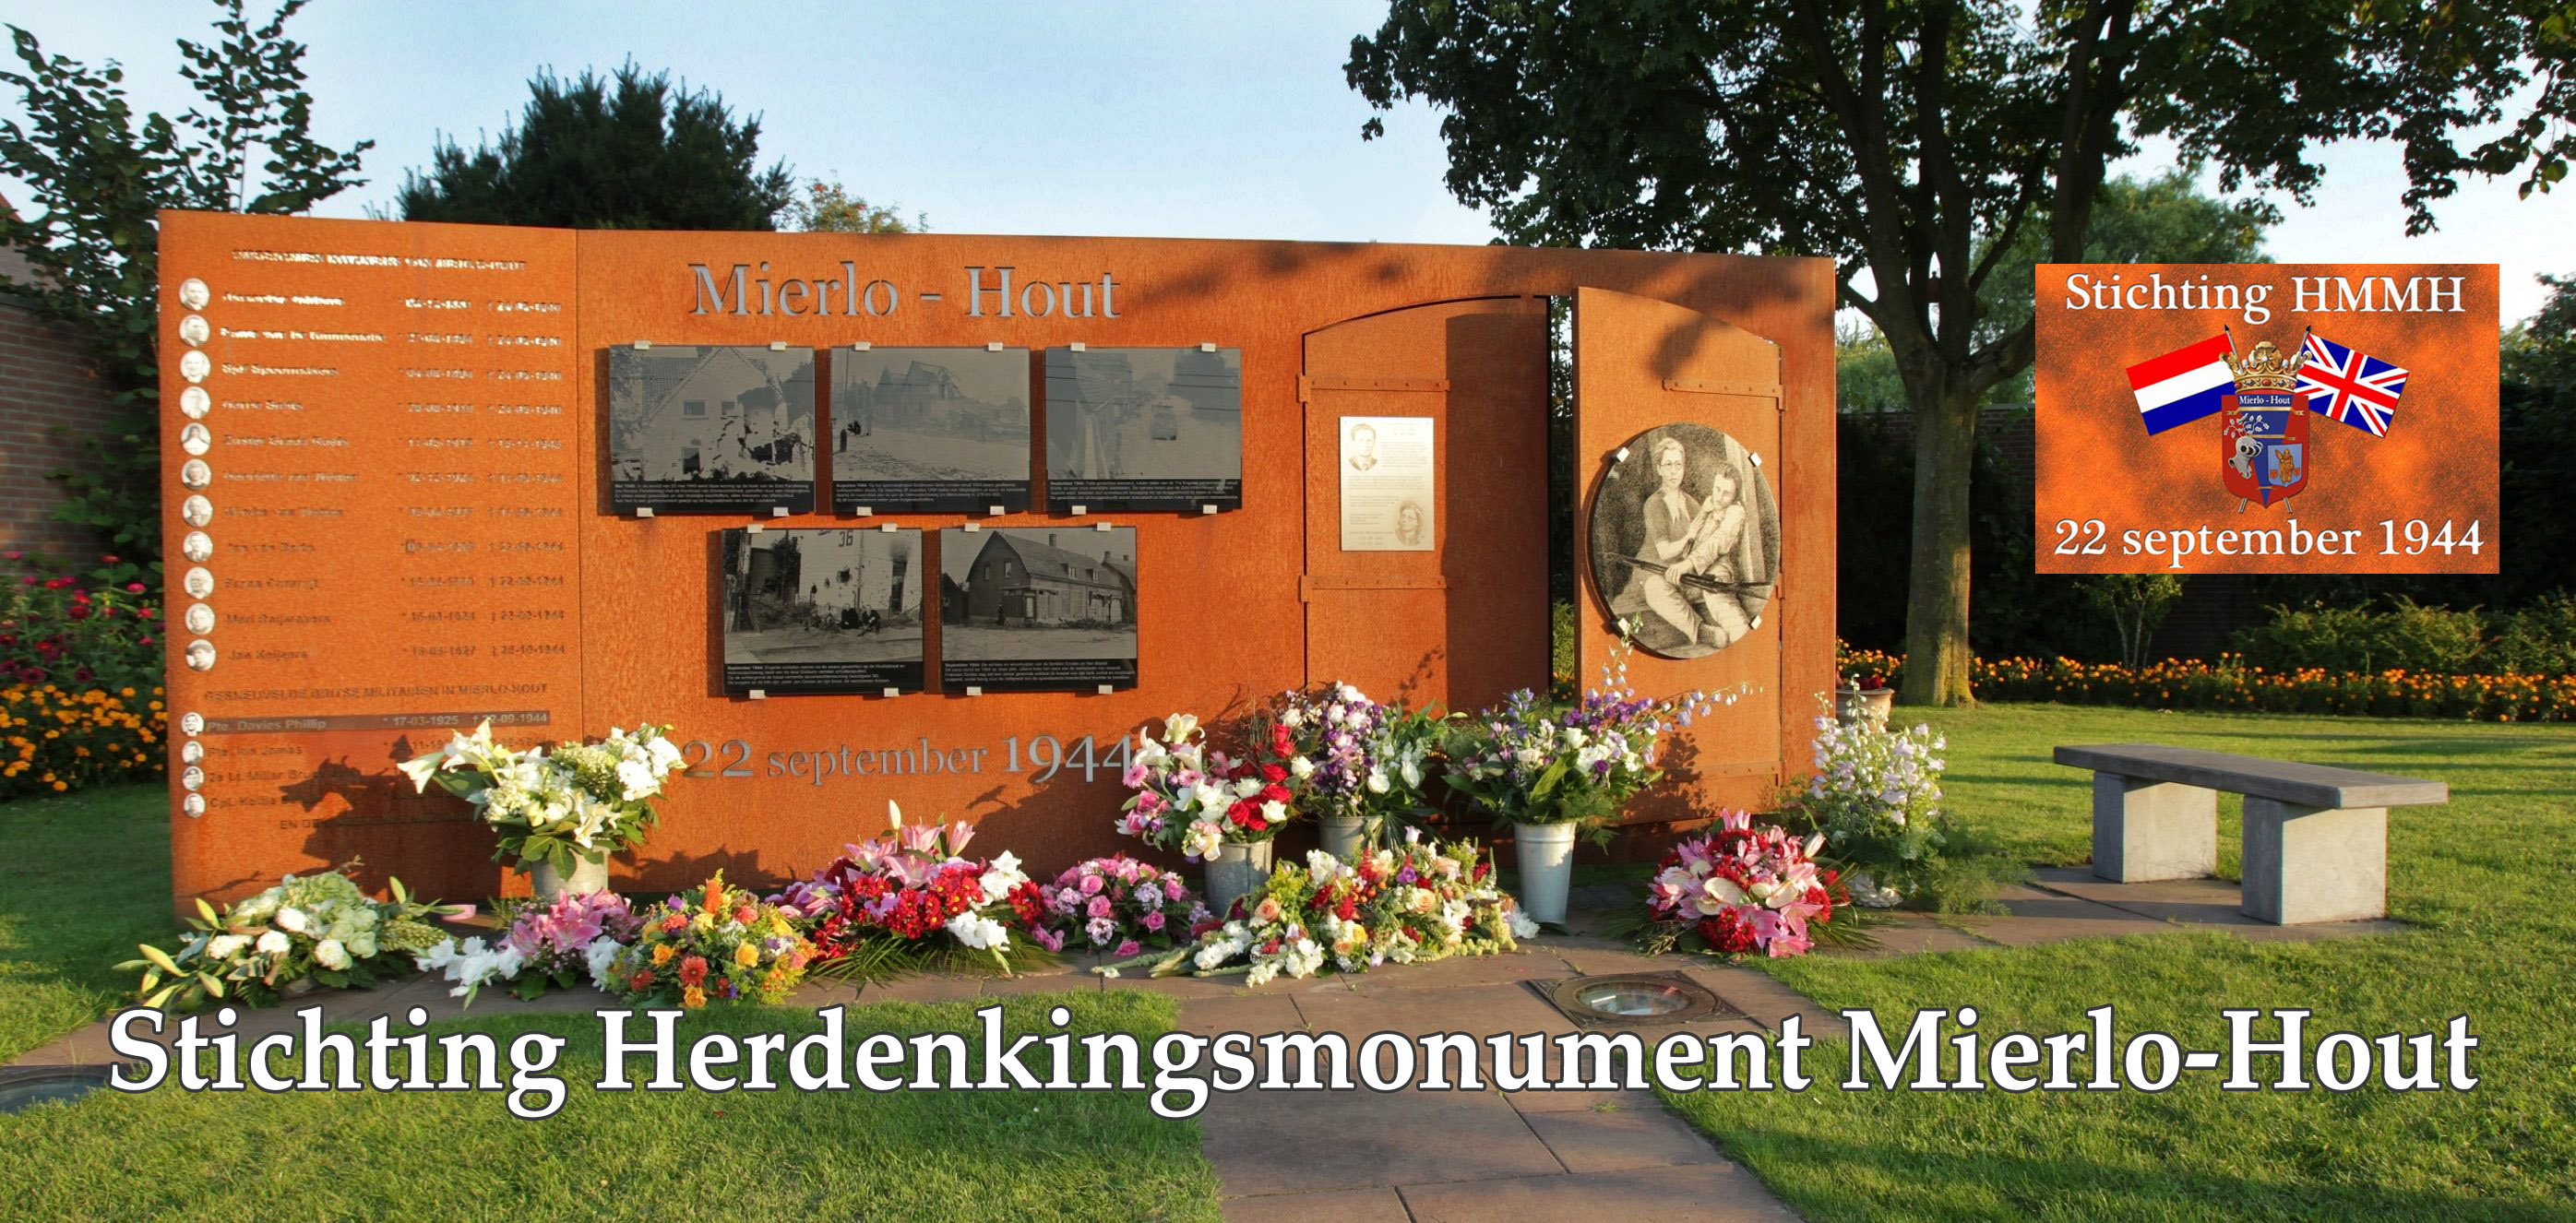 Stichting Herdenkingsmonument Mierlo-Hout